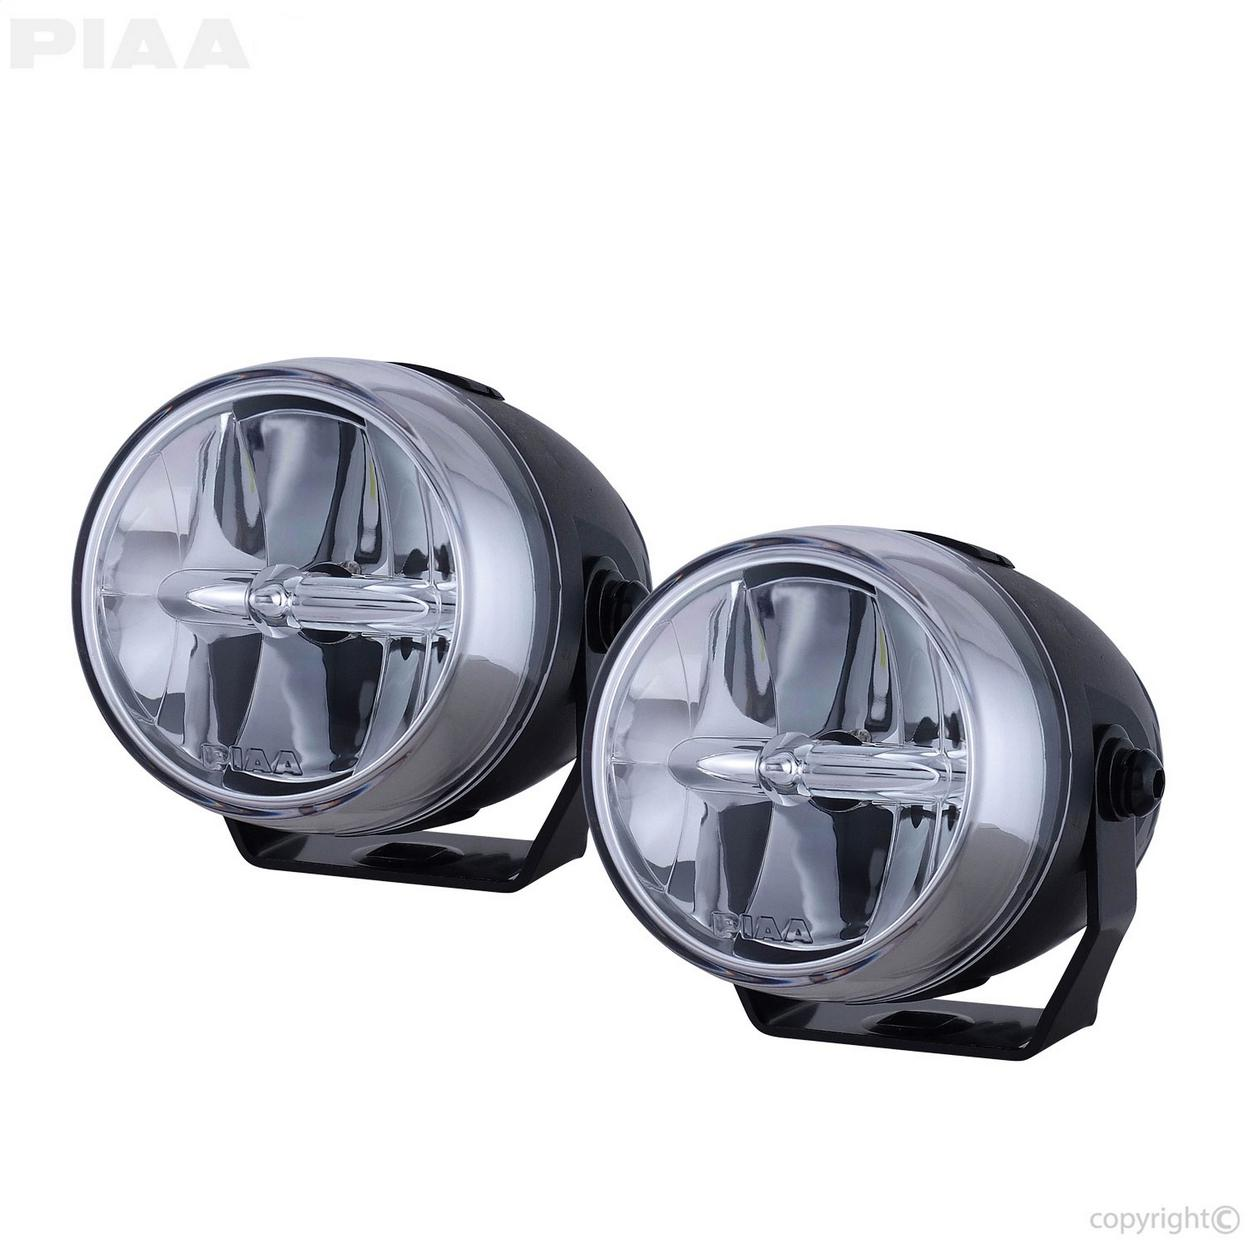 LP270 2.75IN. LED FOG LIGHT KIT; SAE COMPLIANT